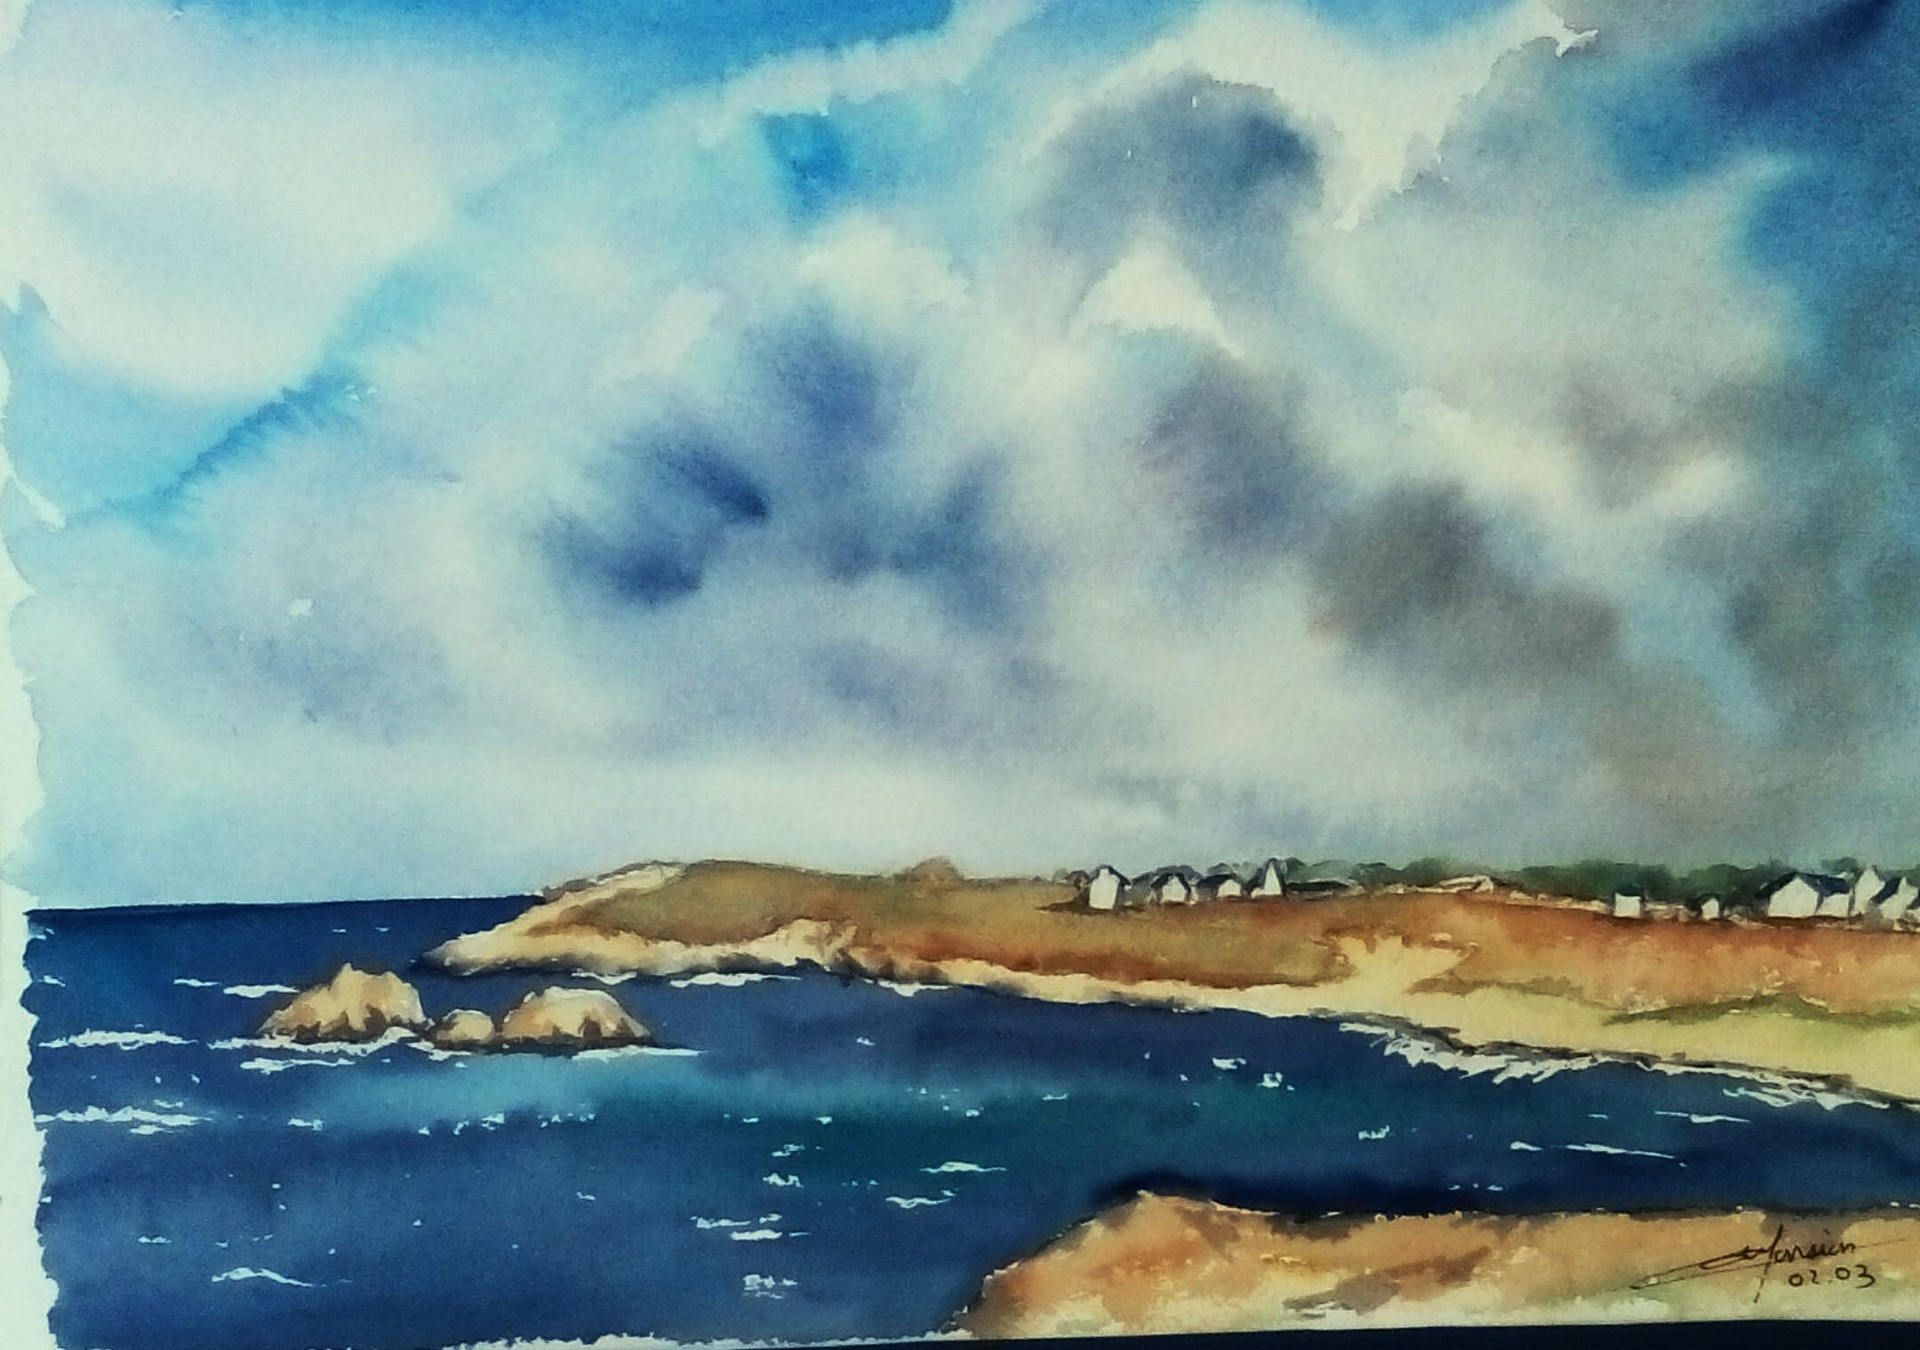 Epingle Sur Aquarelles Opale Isis Christine Monsion